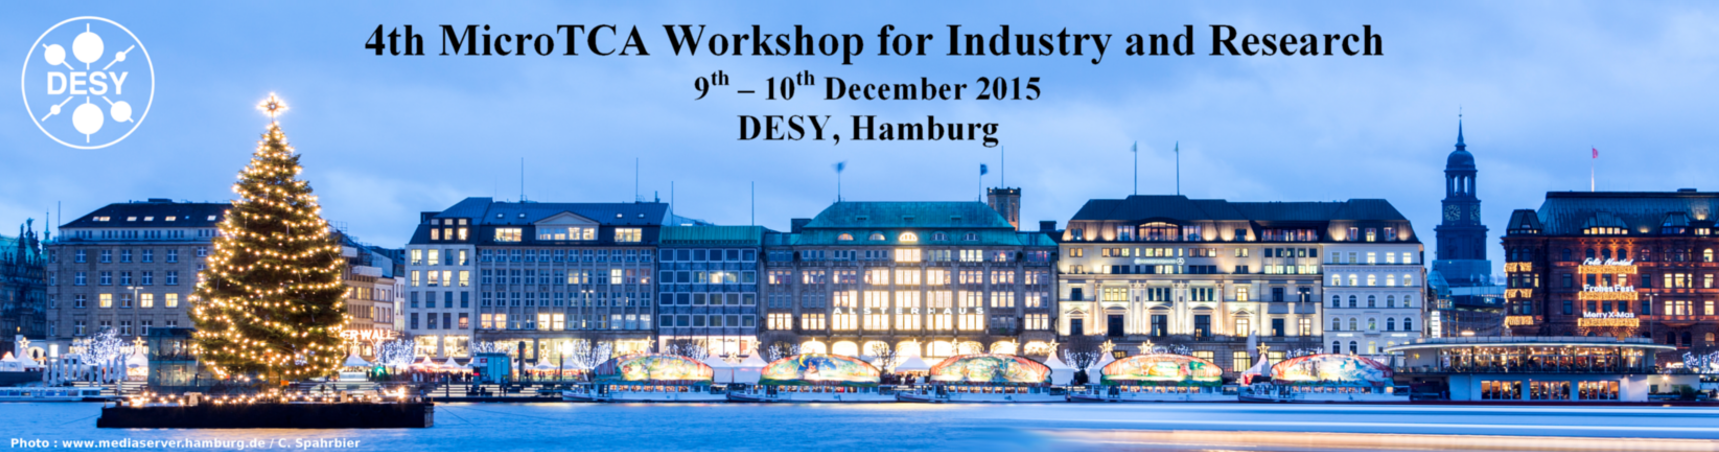 4th MTCA Workshop at DESY, Hamburg, Germany